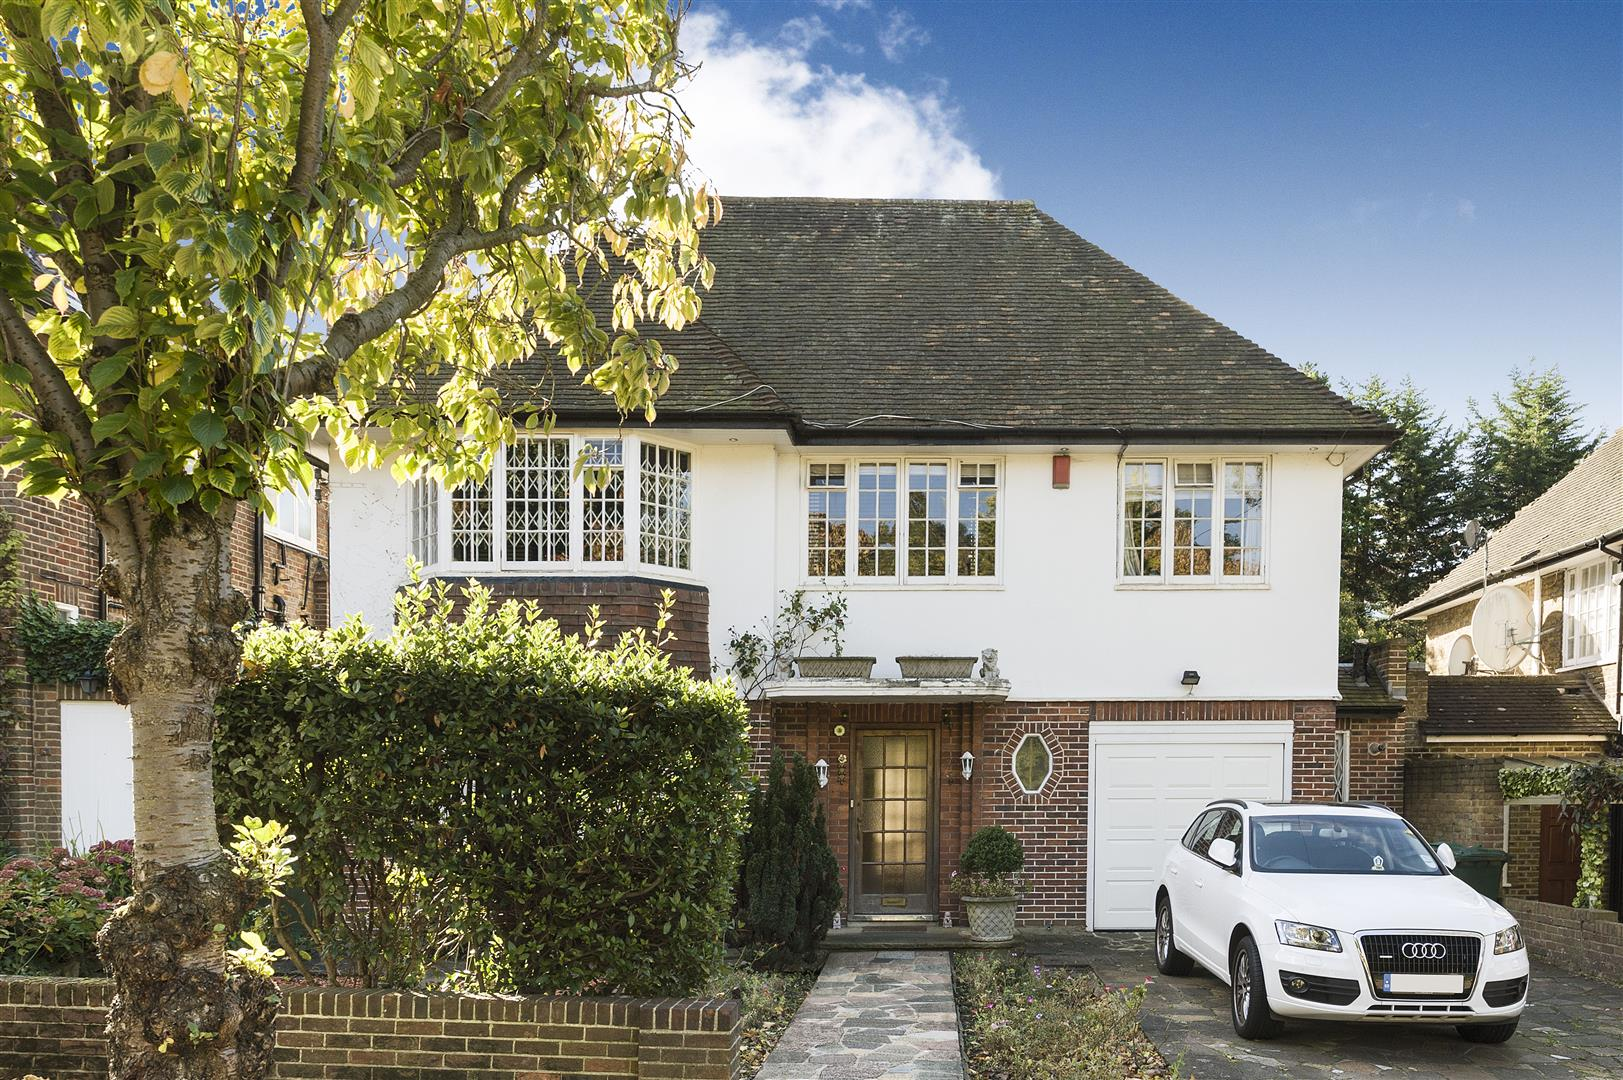 5 Bedrooms House for sale in West Heath Close, Hampstead, London NW3